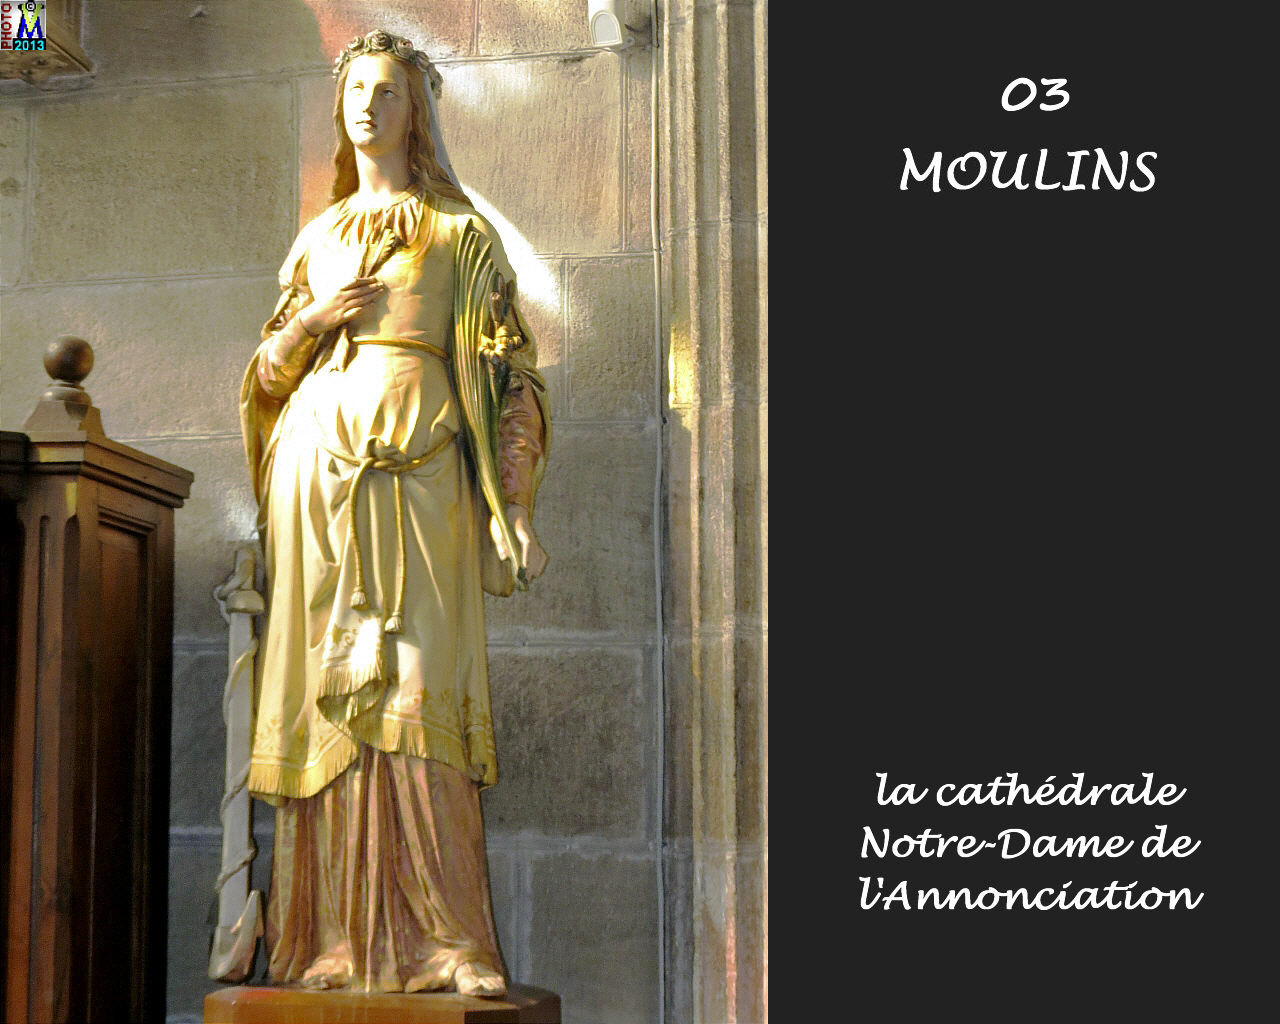 03MOULINS_cathedrale_244.jpg